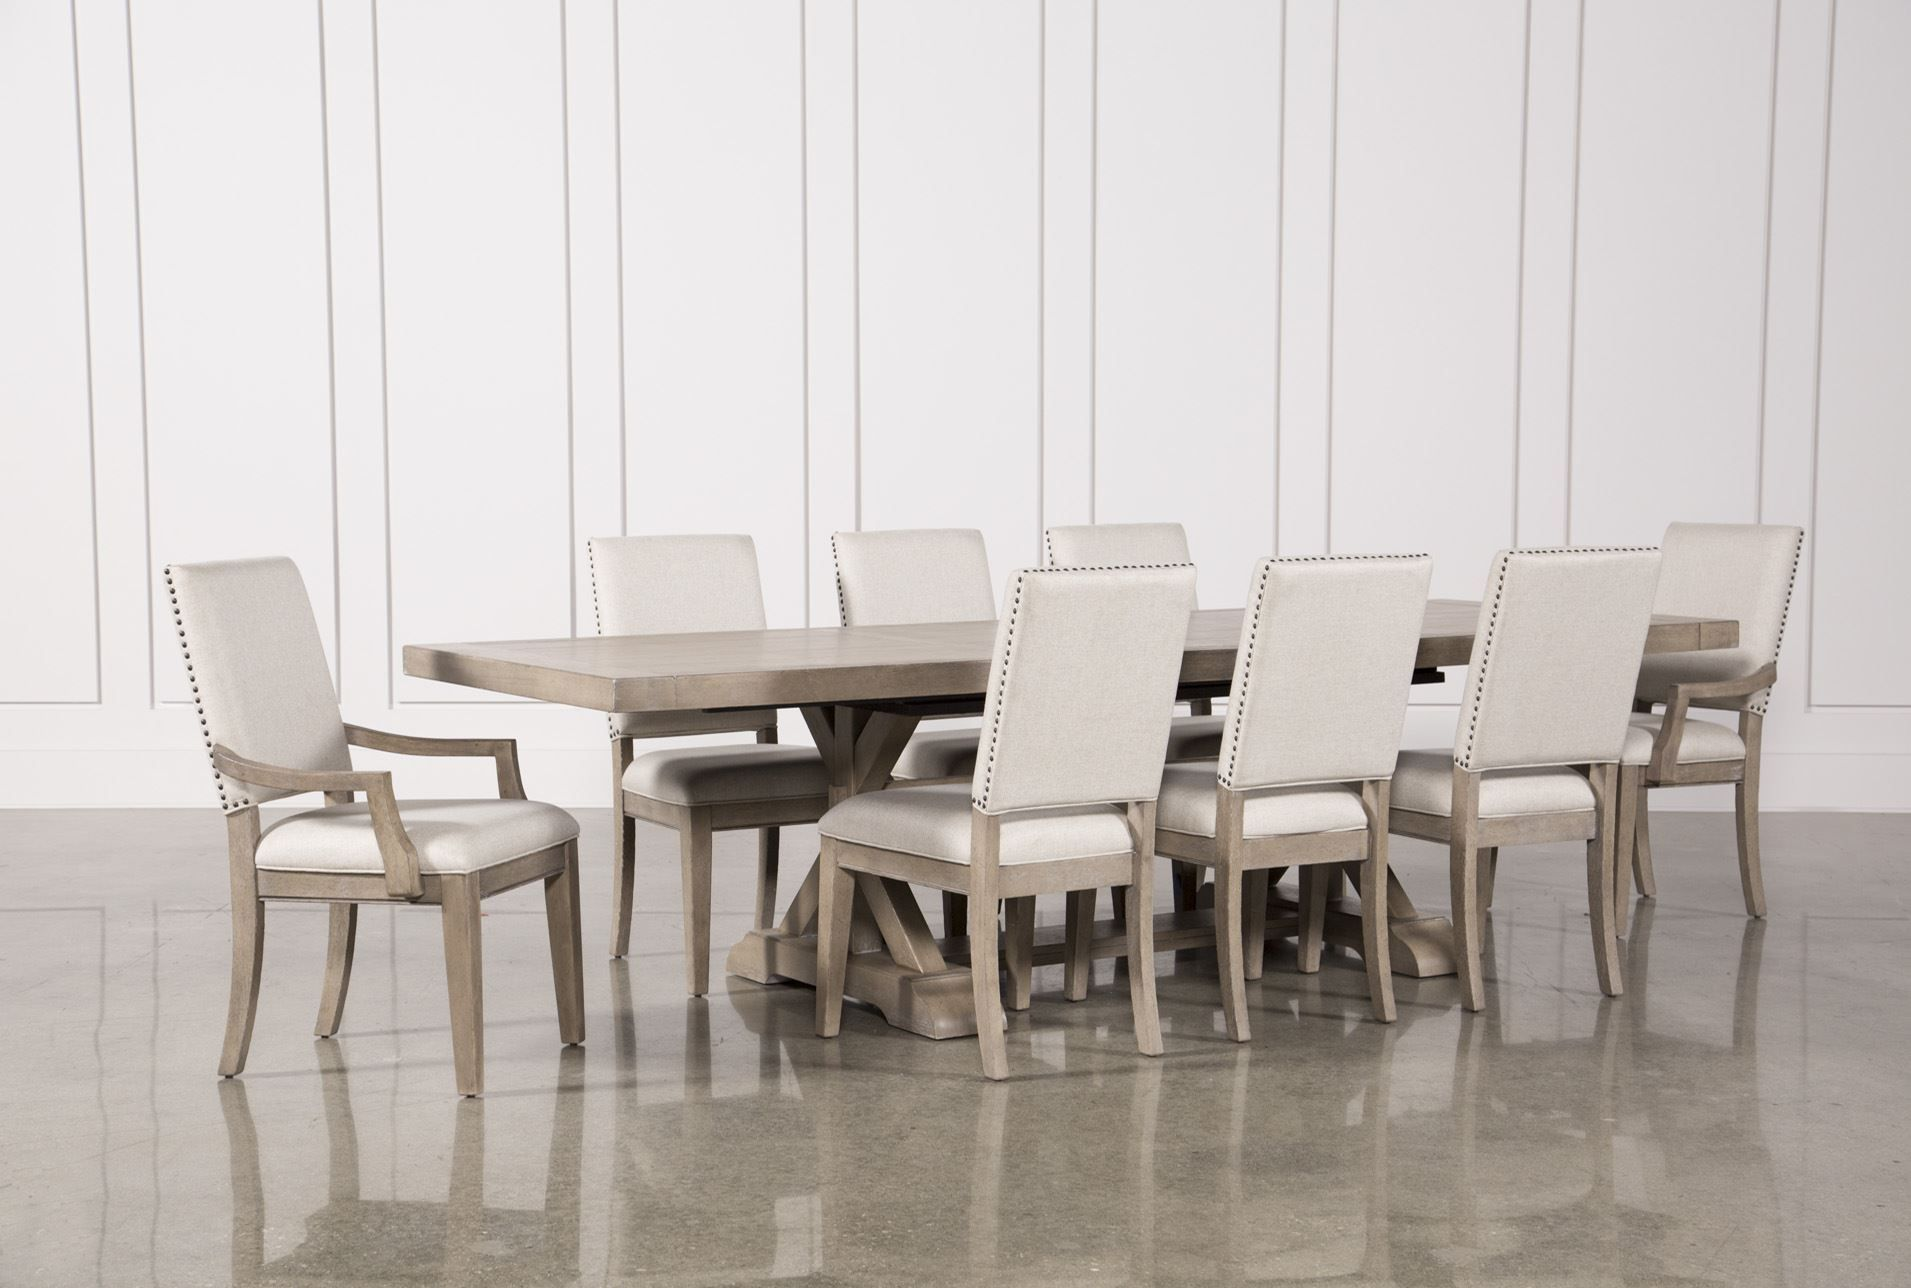 Walden 9 Piece Extension Dining Set | Dining, Dining sets and Living ...